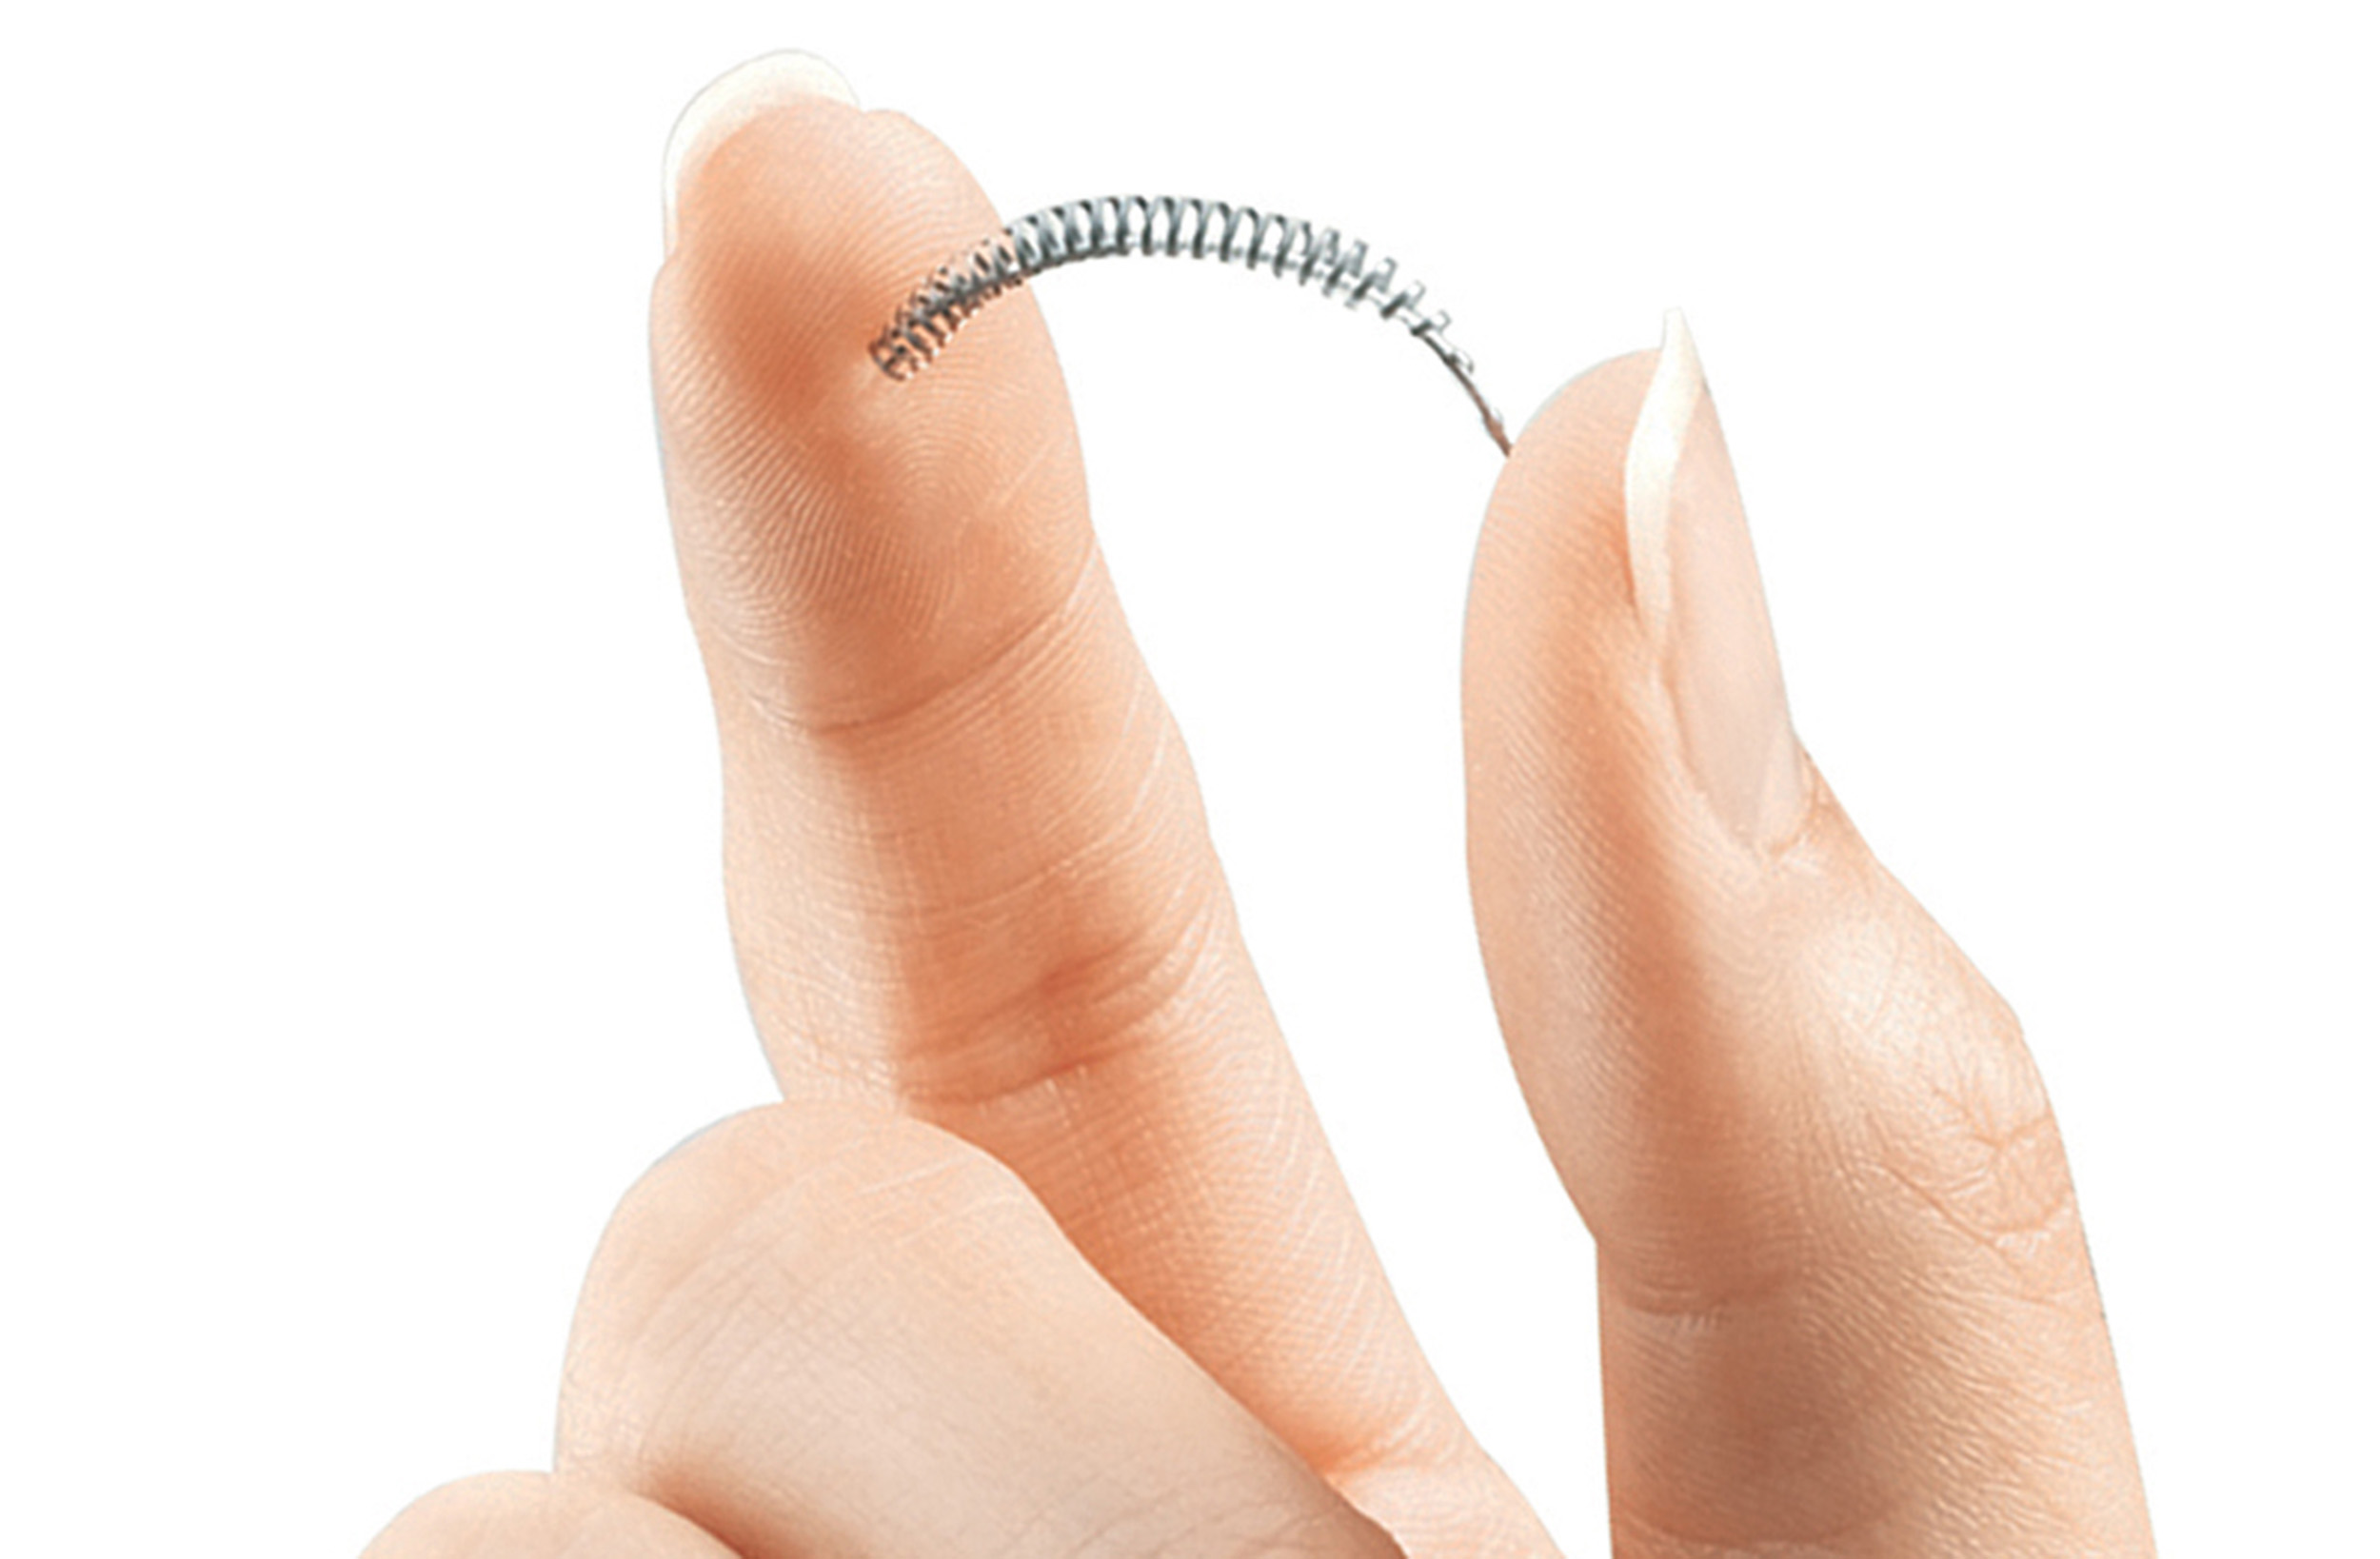 Bayer says it will stop U.S. sales of birth control device Essure